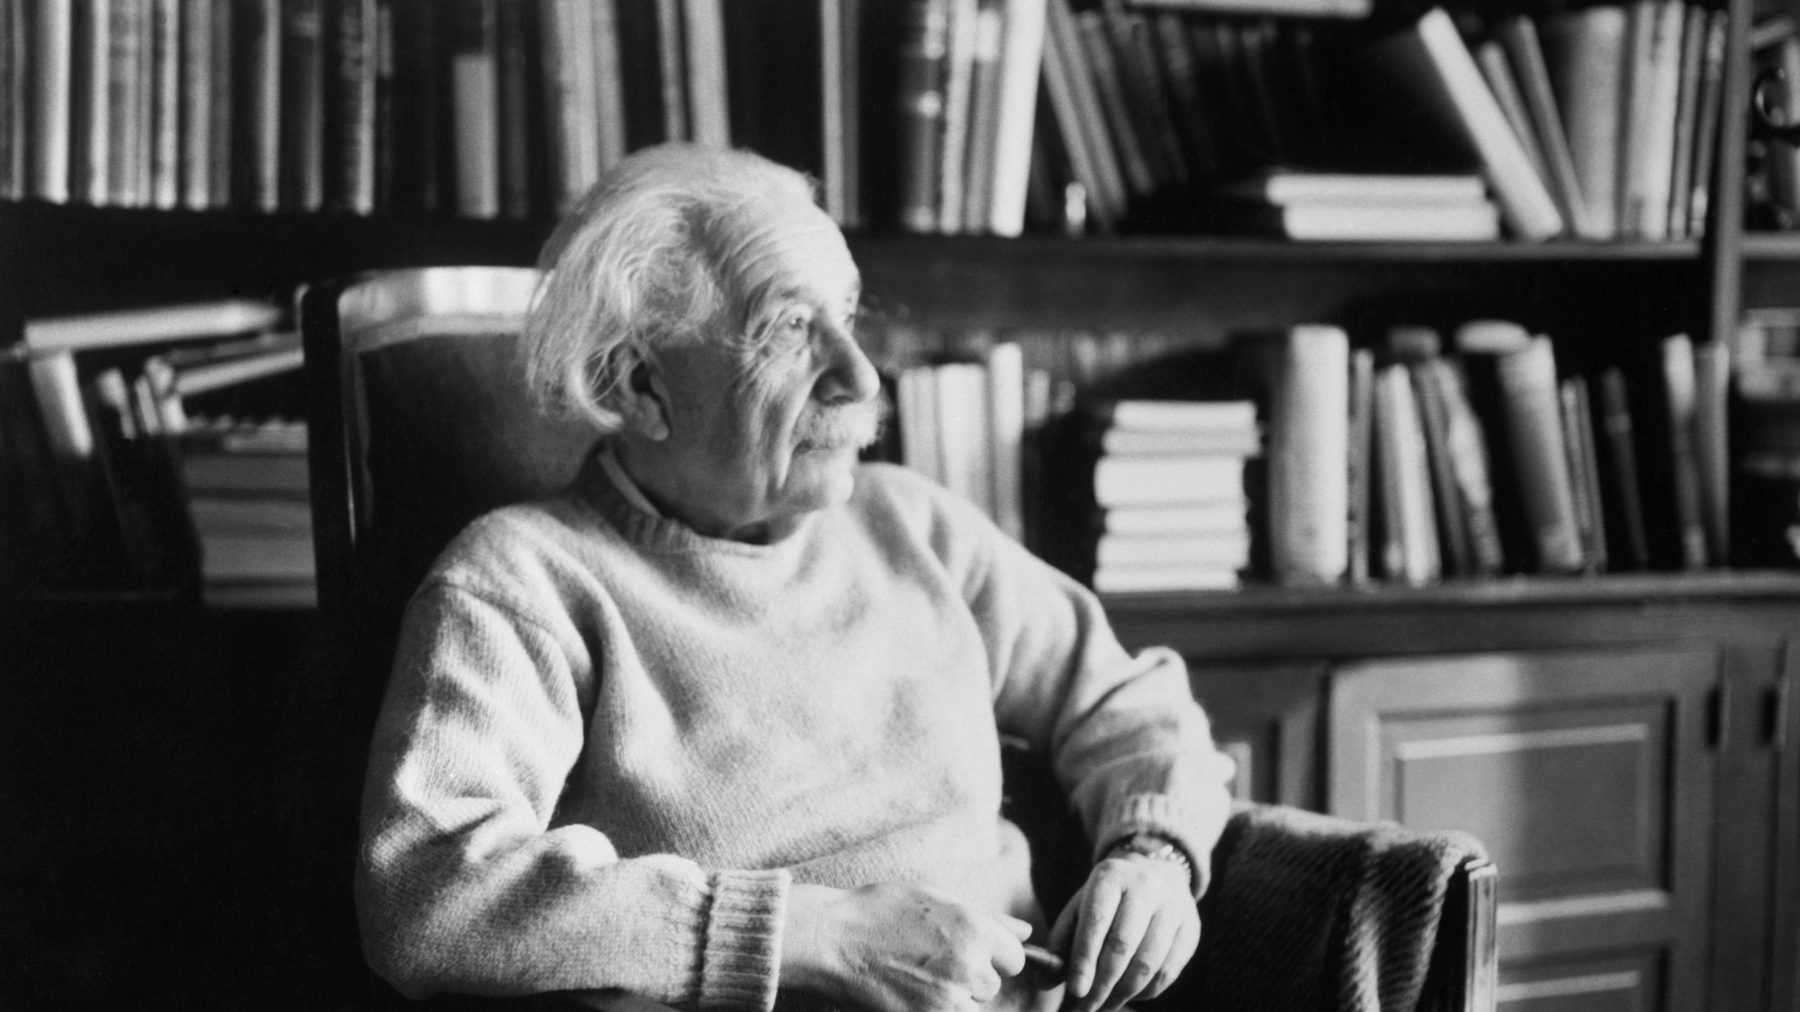 Princeton, New Jersey: Physicist Albert Einstein (1879-1955), seated in book-filled office. (Getty Images)